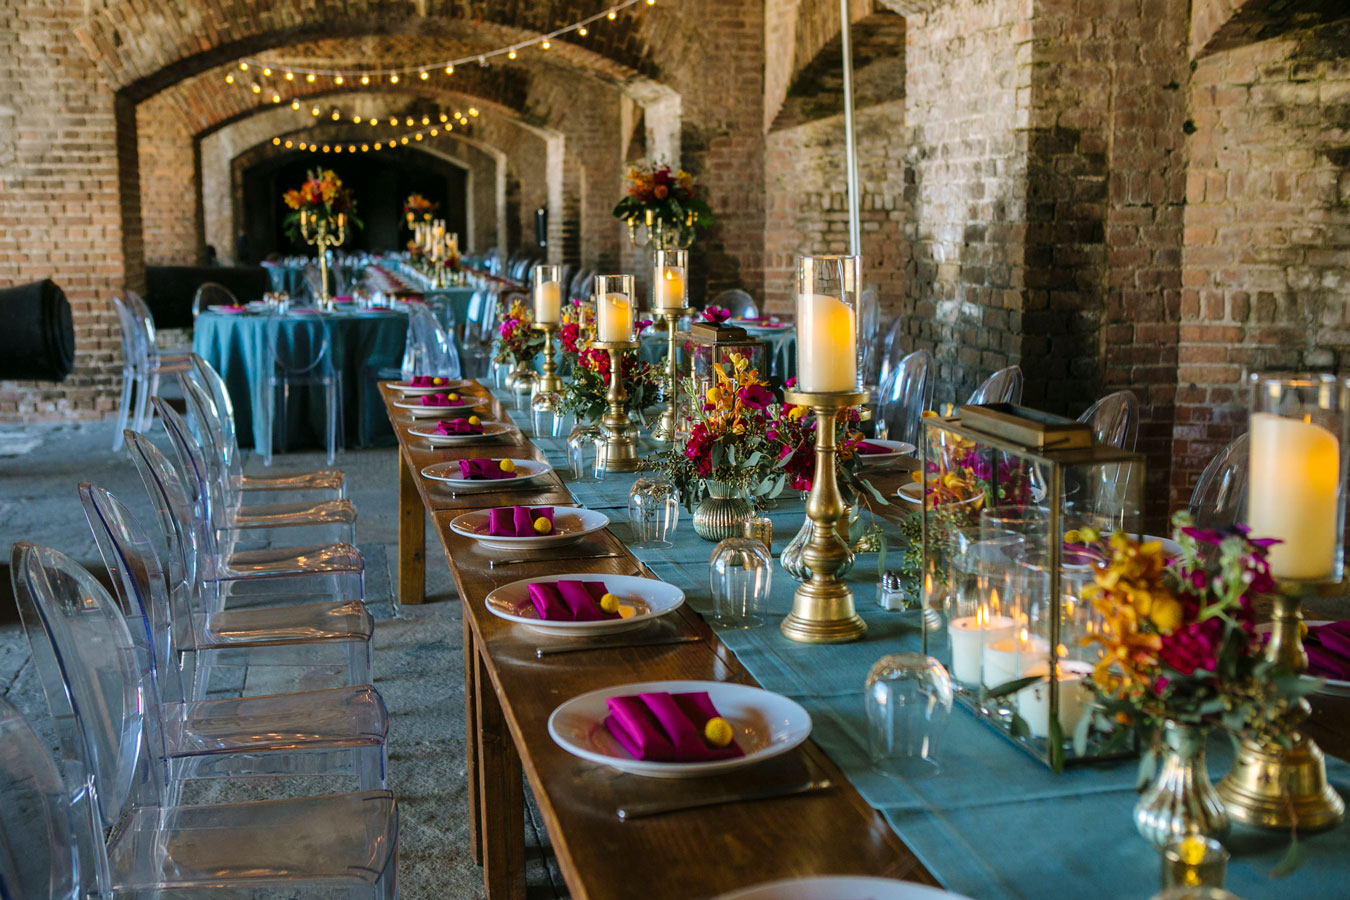 Photo of table decorations for a wedding reception in Fort Zachary Taylor.